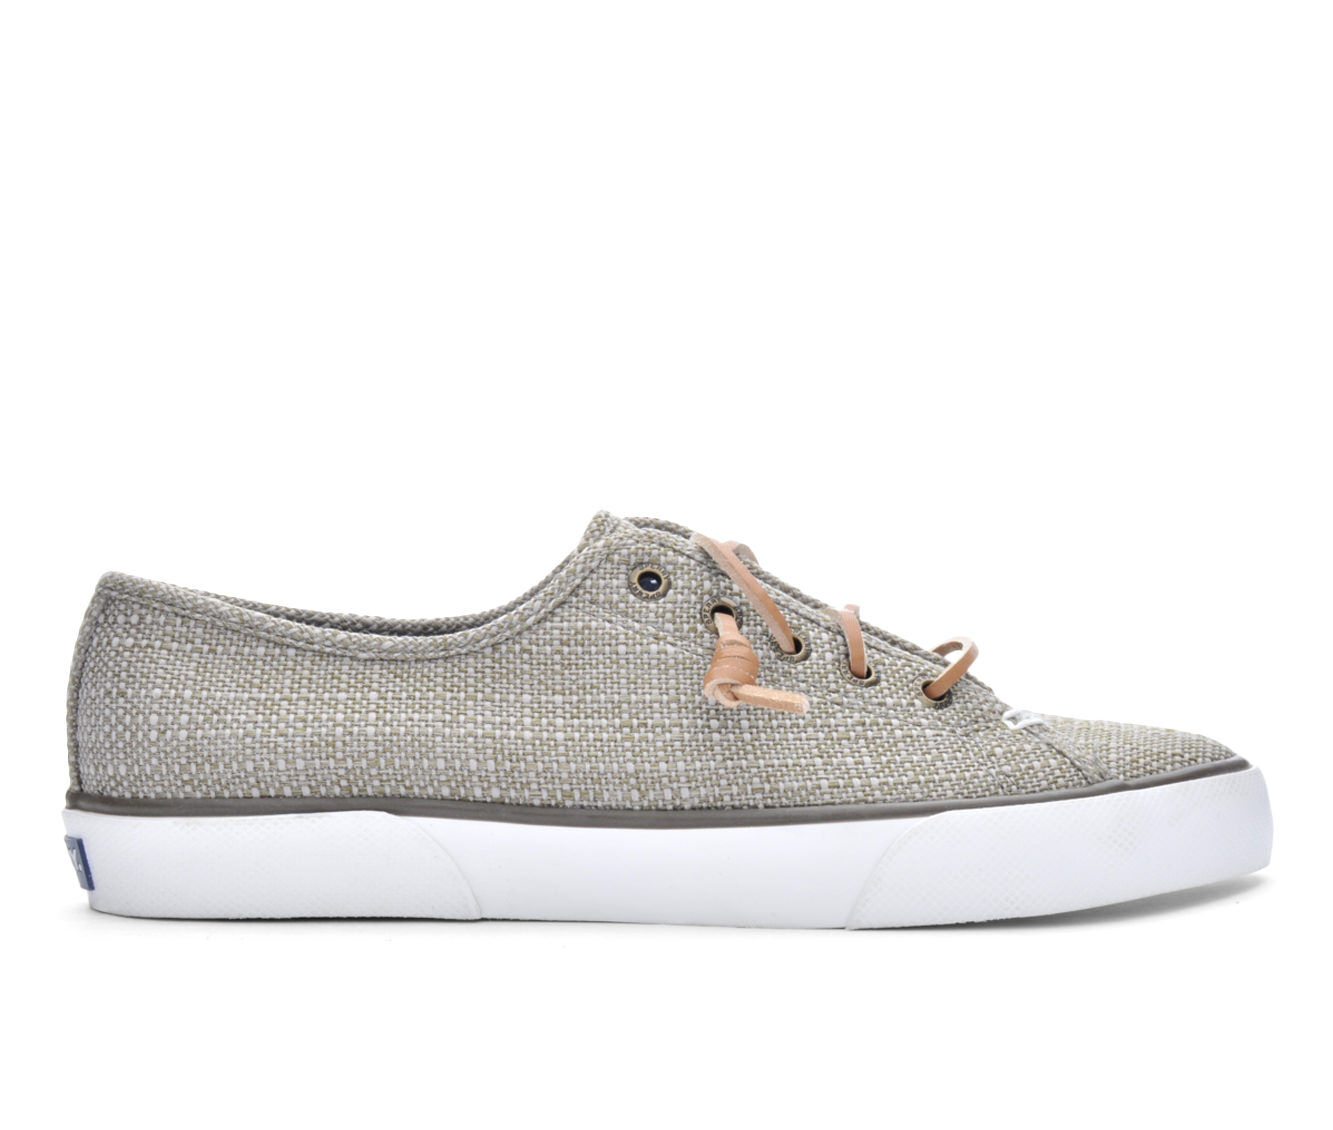 Images. Women's Sperry Pier View Textured Sneakers